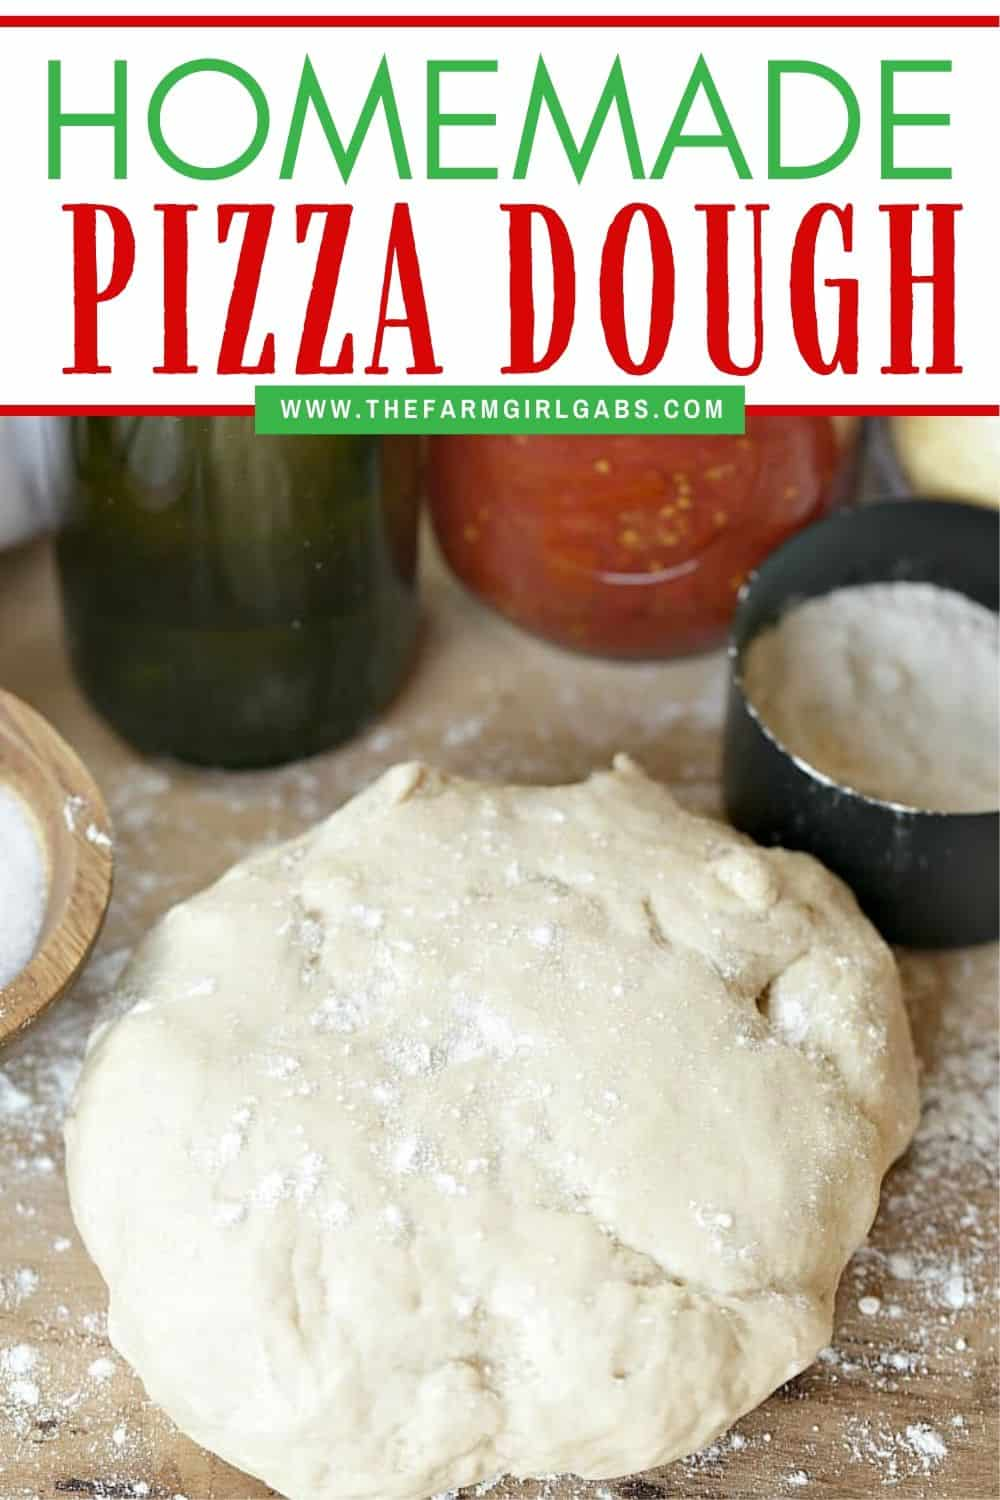 Make any night pizza night! With a few simple ingredients, this Best homemade Pizza Dough recipe is perfect for a tasty homemade pizza dinner at home. #pizzadough #pizzarecipe